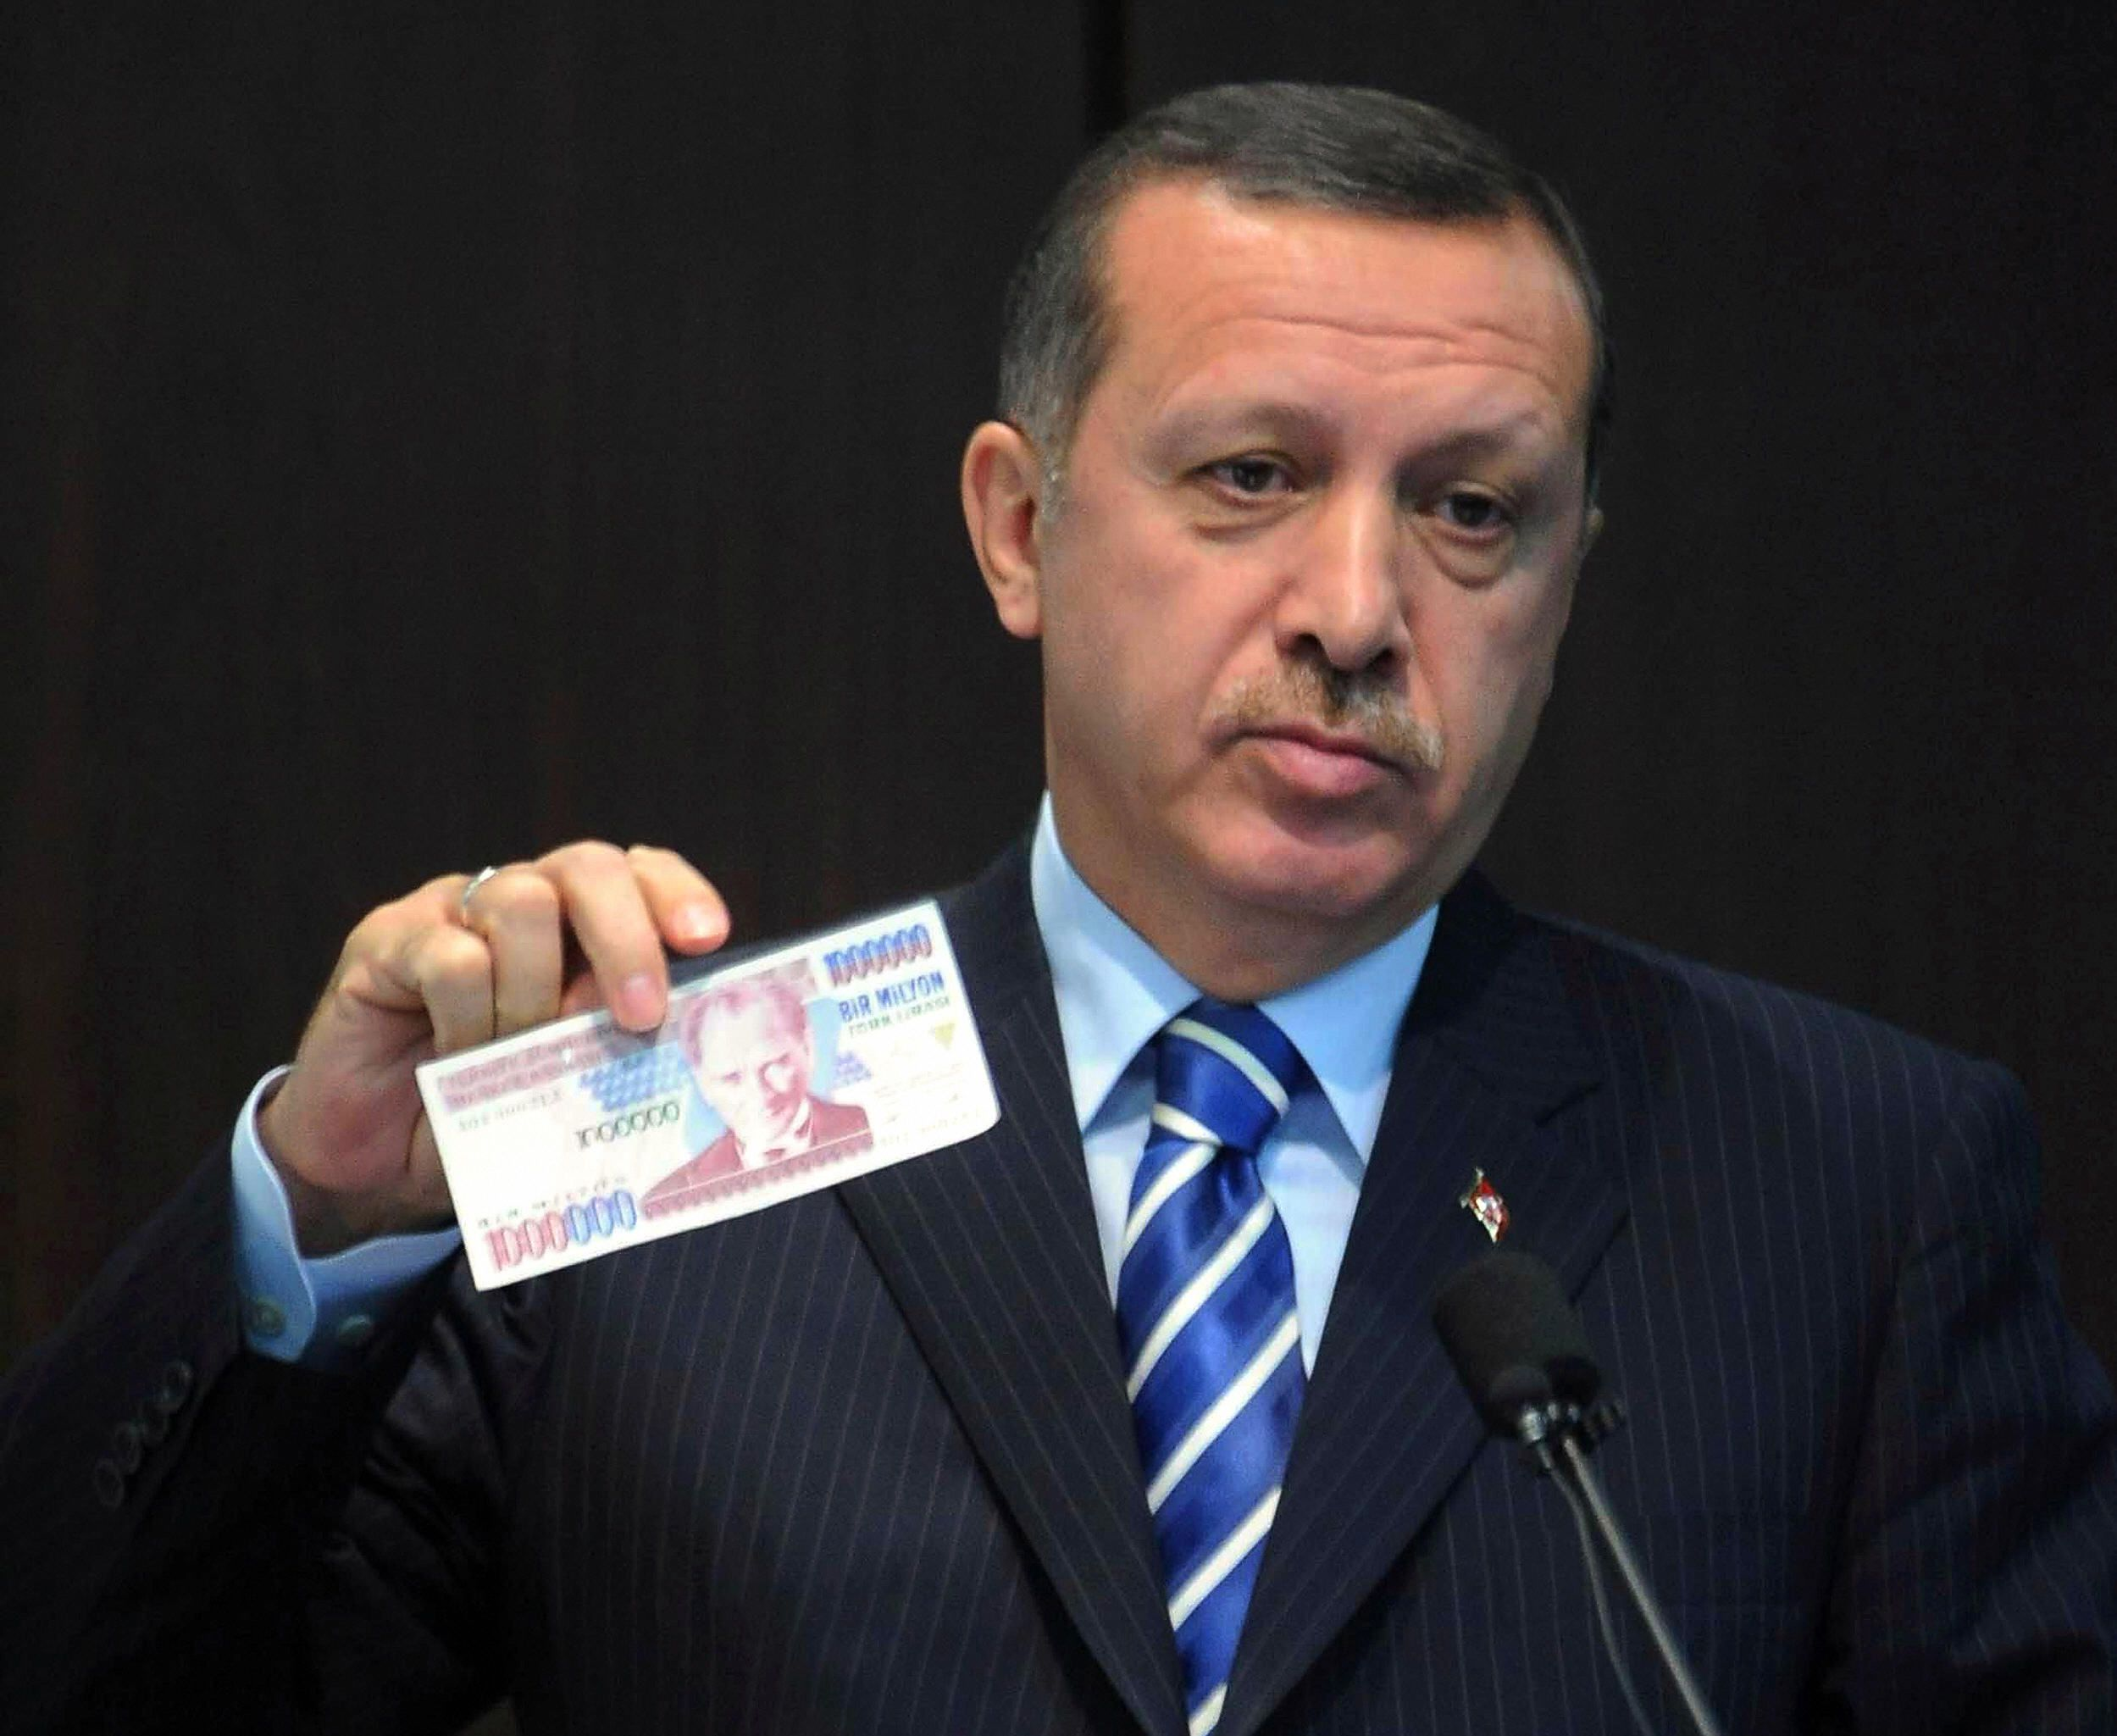 "Turkish Prime Minister Tayyip Erdogan displays an banknote of the old Turkish Lira at a news conference in Ankara October 3, 2008. Turkey will return to its old currency, the Turkish Lira, on January 1, after a major money reform four years ago that saw the introduction of the New Turkish Lira. The banner in the background reads ""The Turkish lira is coming"". AFP PHOTO/ADEM ALTAN (Photo credit should read ADEM ALTAN/AFP/Getty Images)"